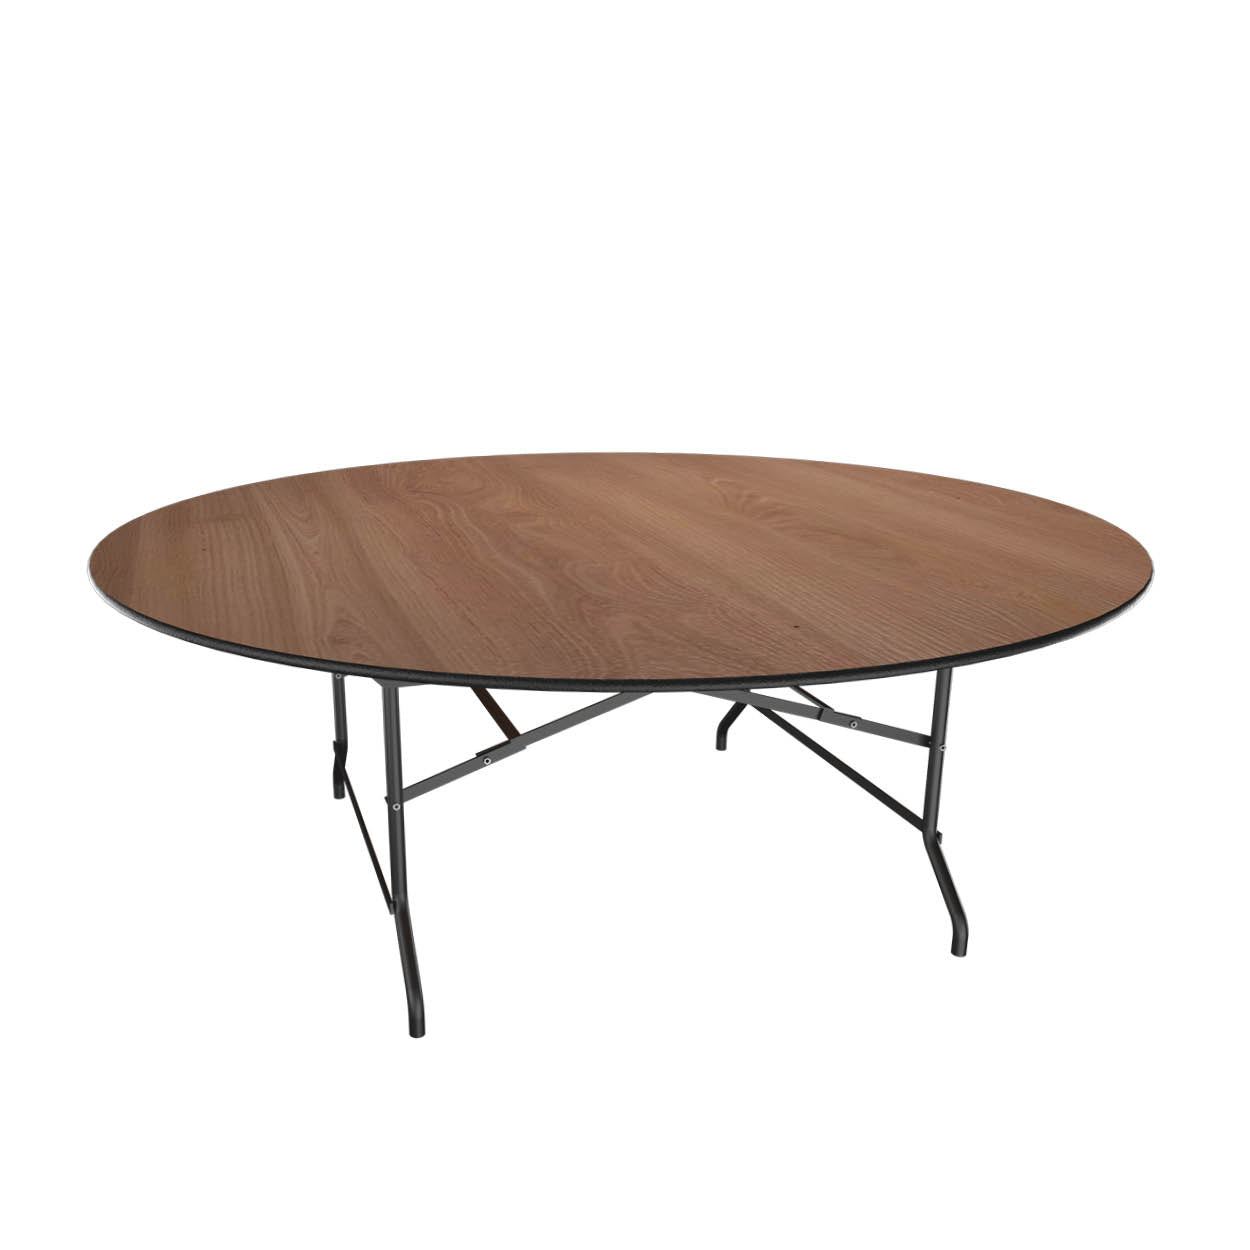 Hedcor Round folding table